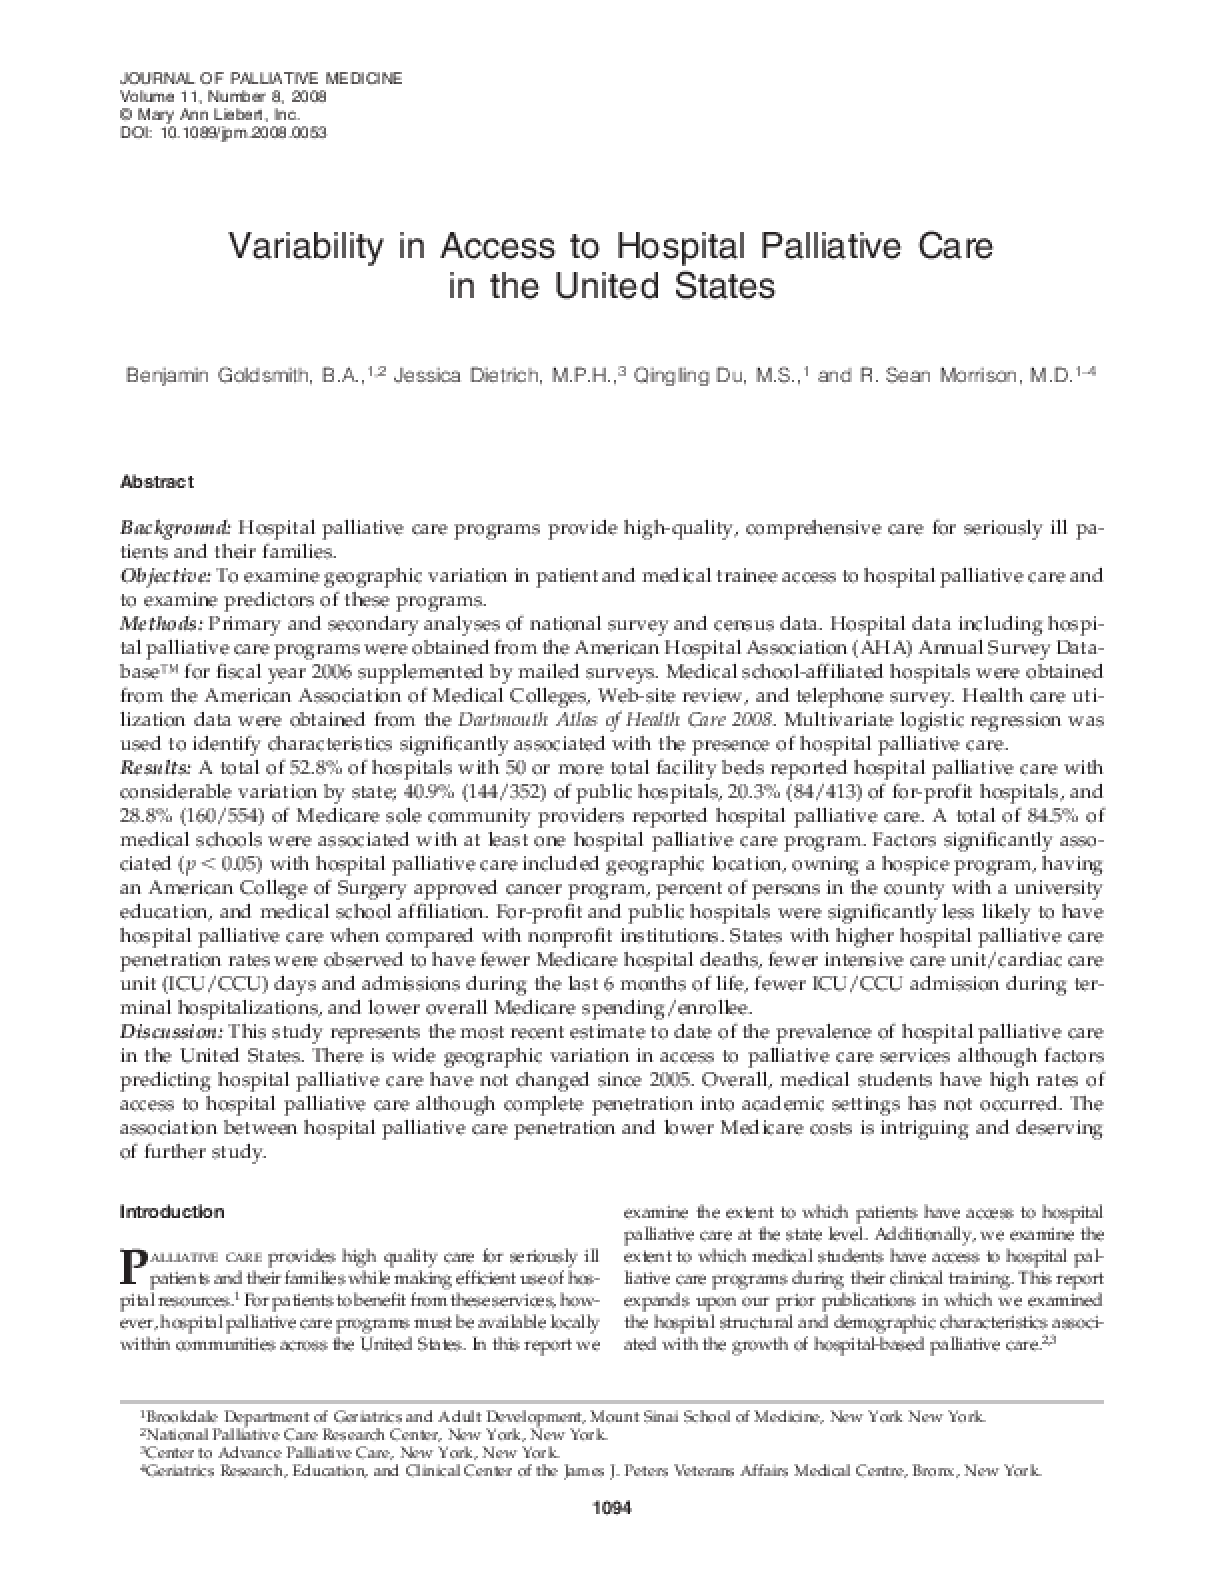 Variability in Access to Hospital Palliative Care in the United States